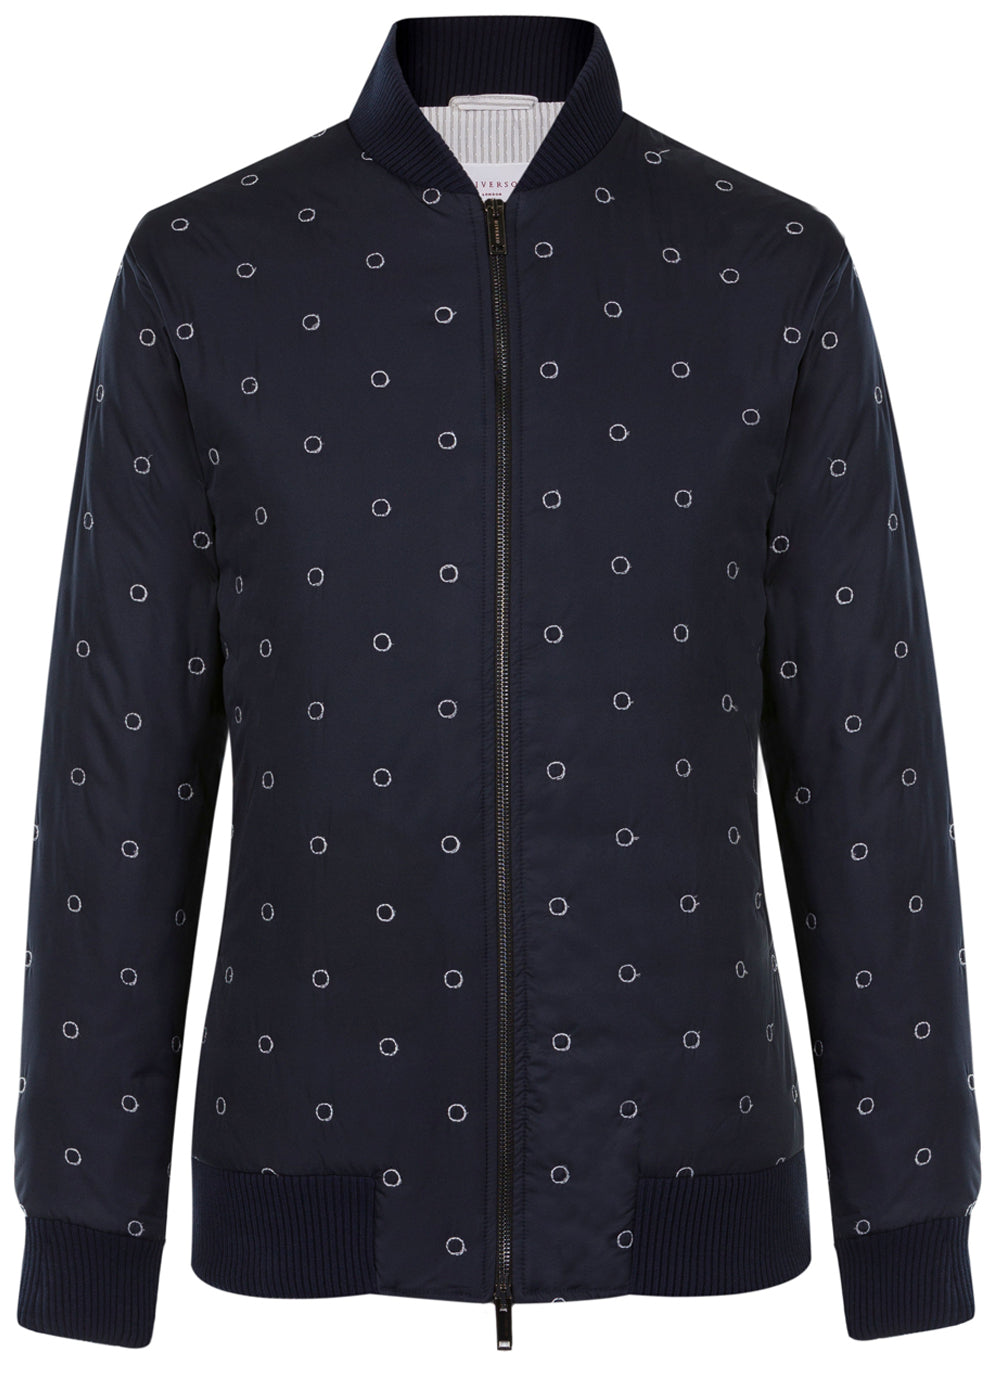 Navy Embroidered Bomber